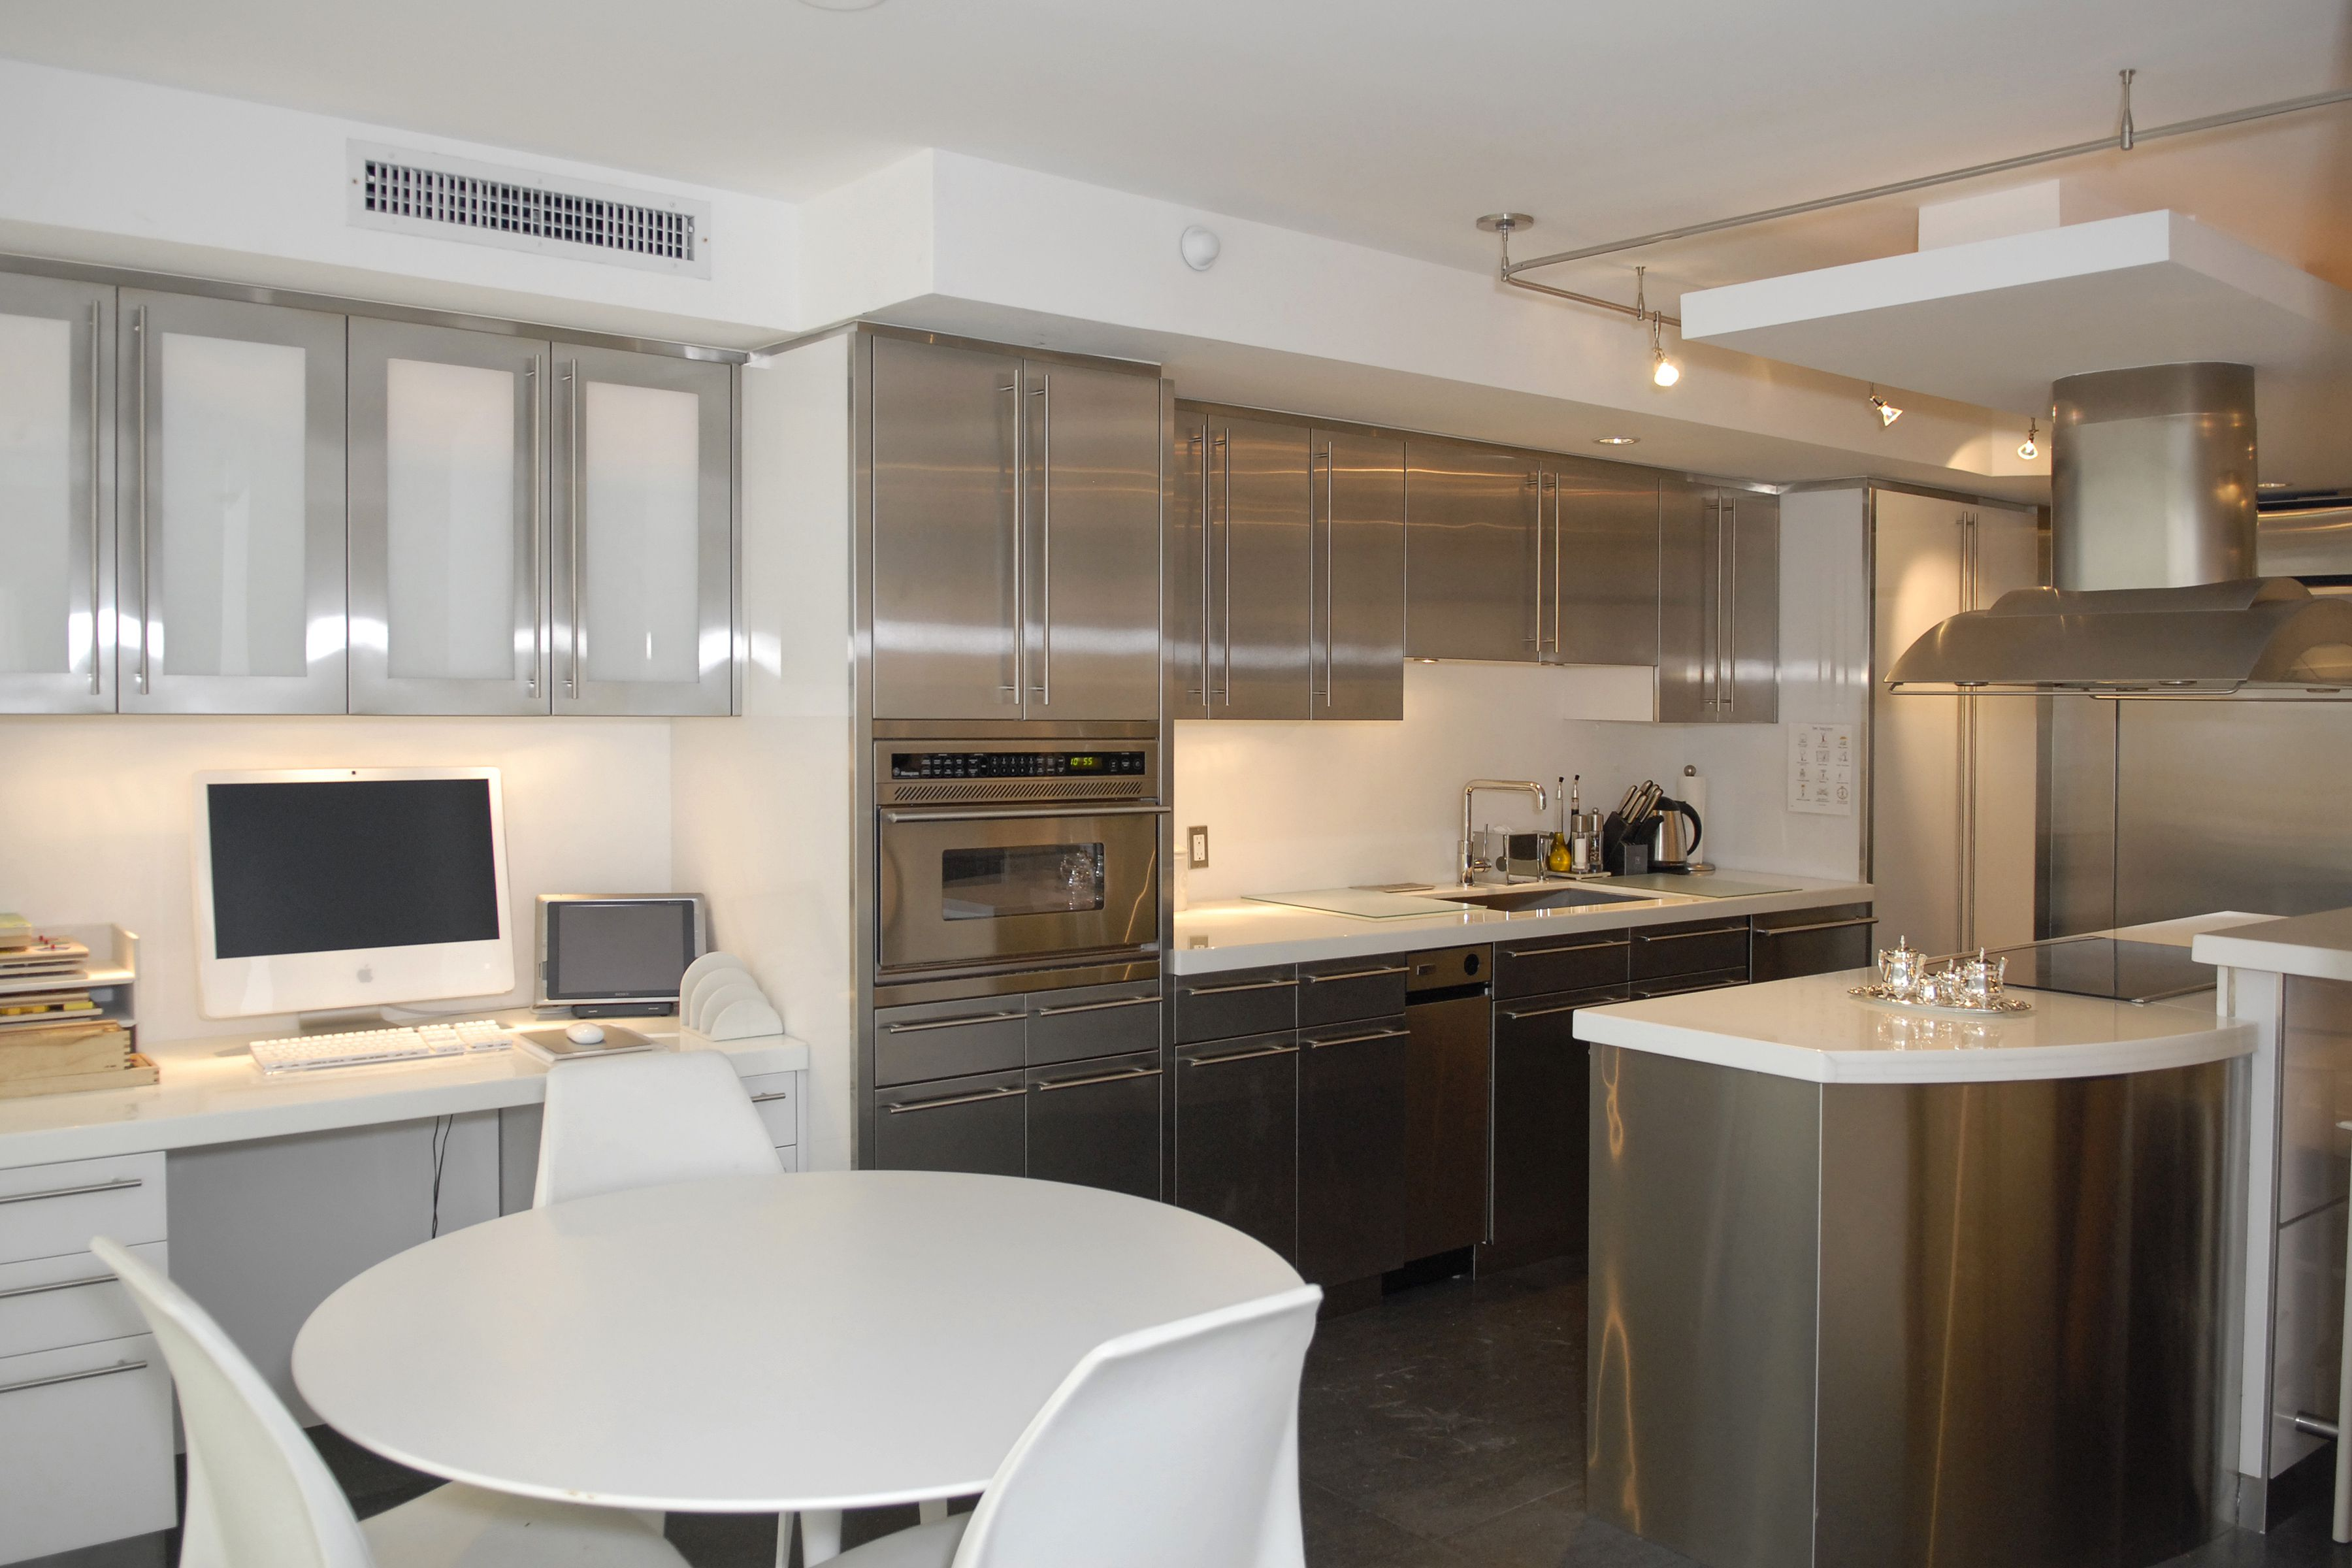 Some Important Points To Know Before Picking The Right Stainless Steel Kitchen Cabinets Artmakehome